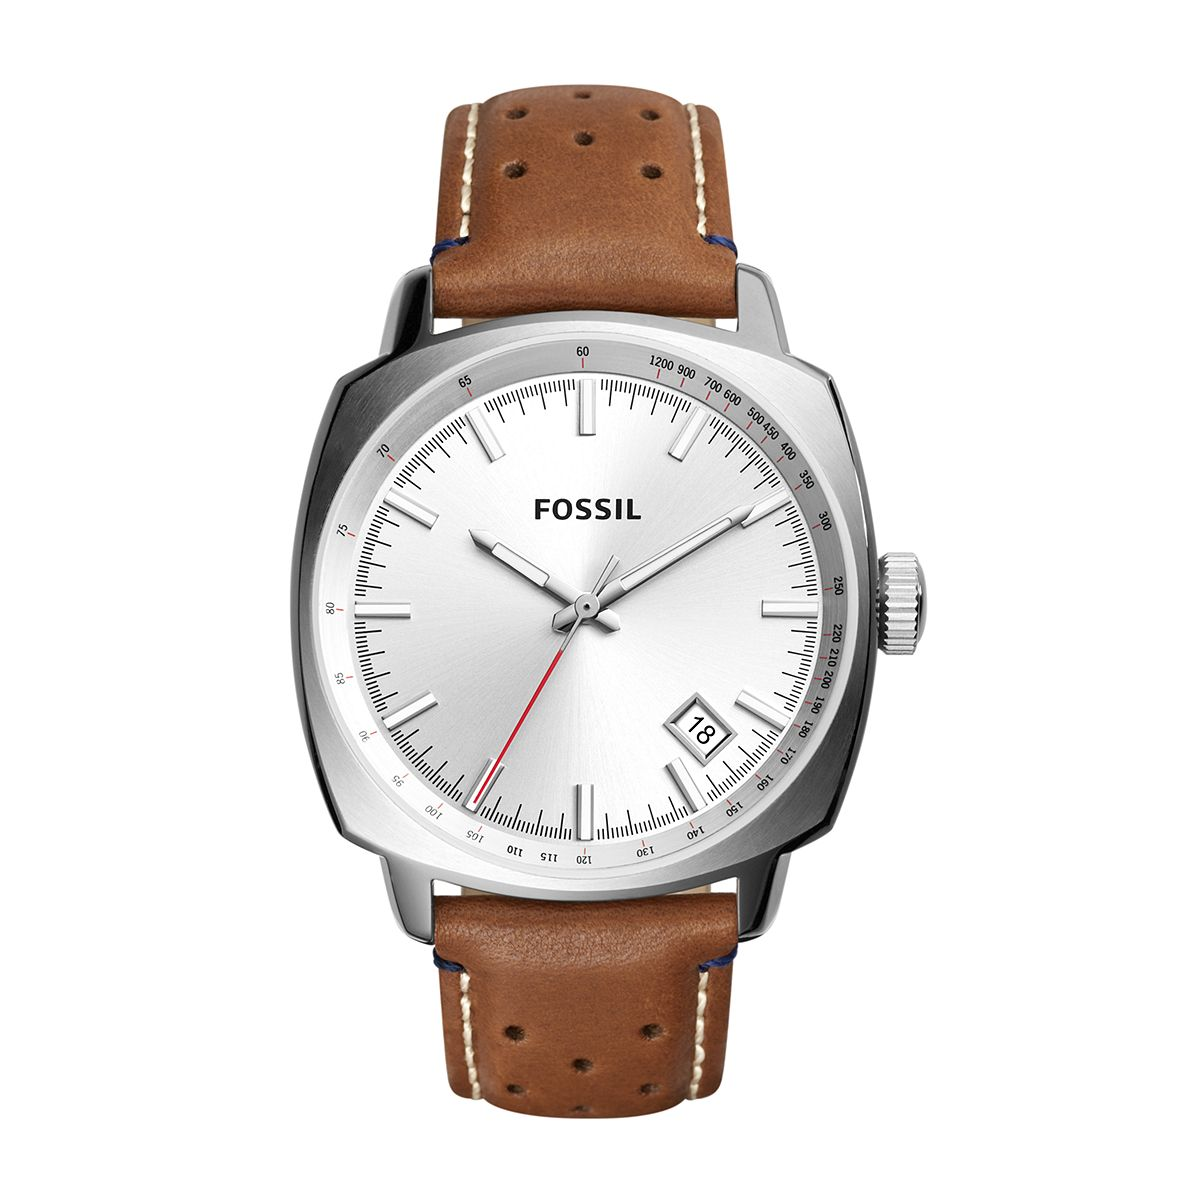 Haywood Men's Brown Strap Watch / Promotional product fully cust